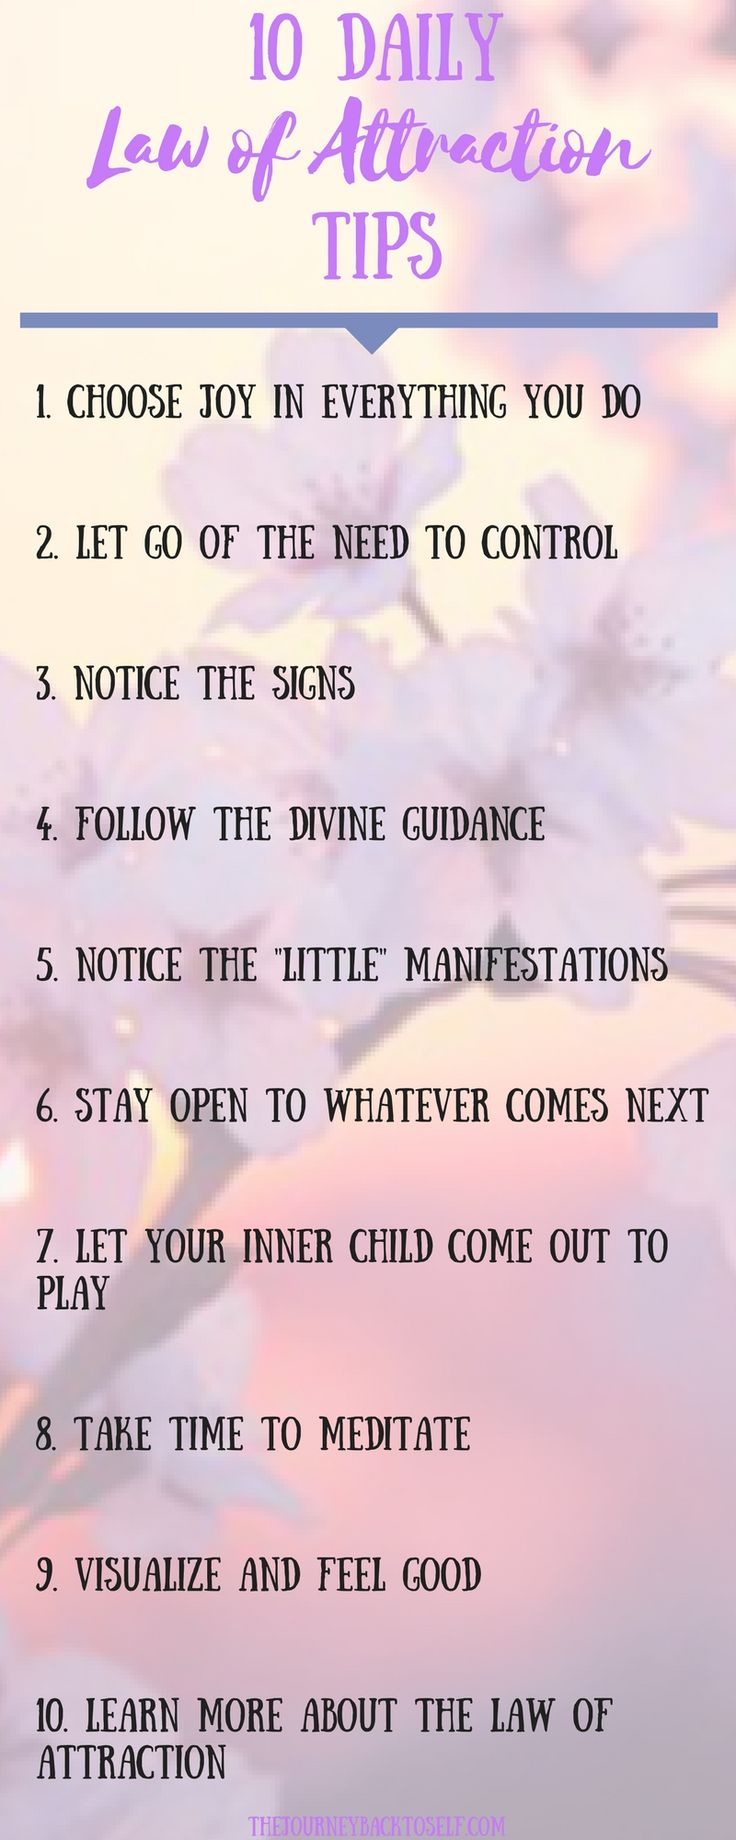 10 Daily Law of Attraction Tips. Click to know more about these tips: http://www.thejourneybacktoself.com/10-daily-law-of-attraction-tips/